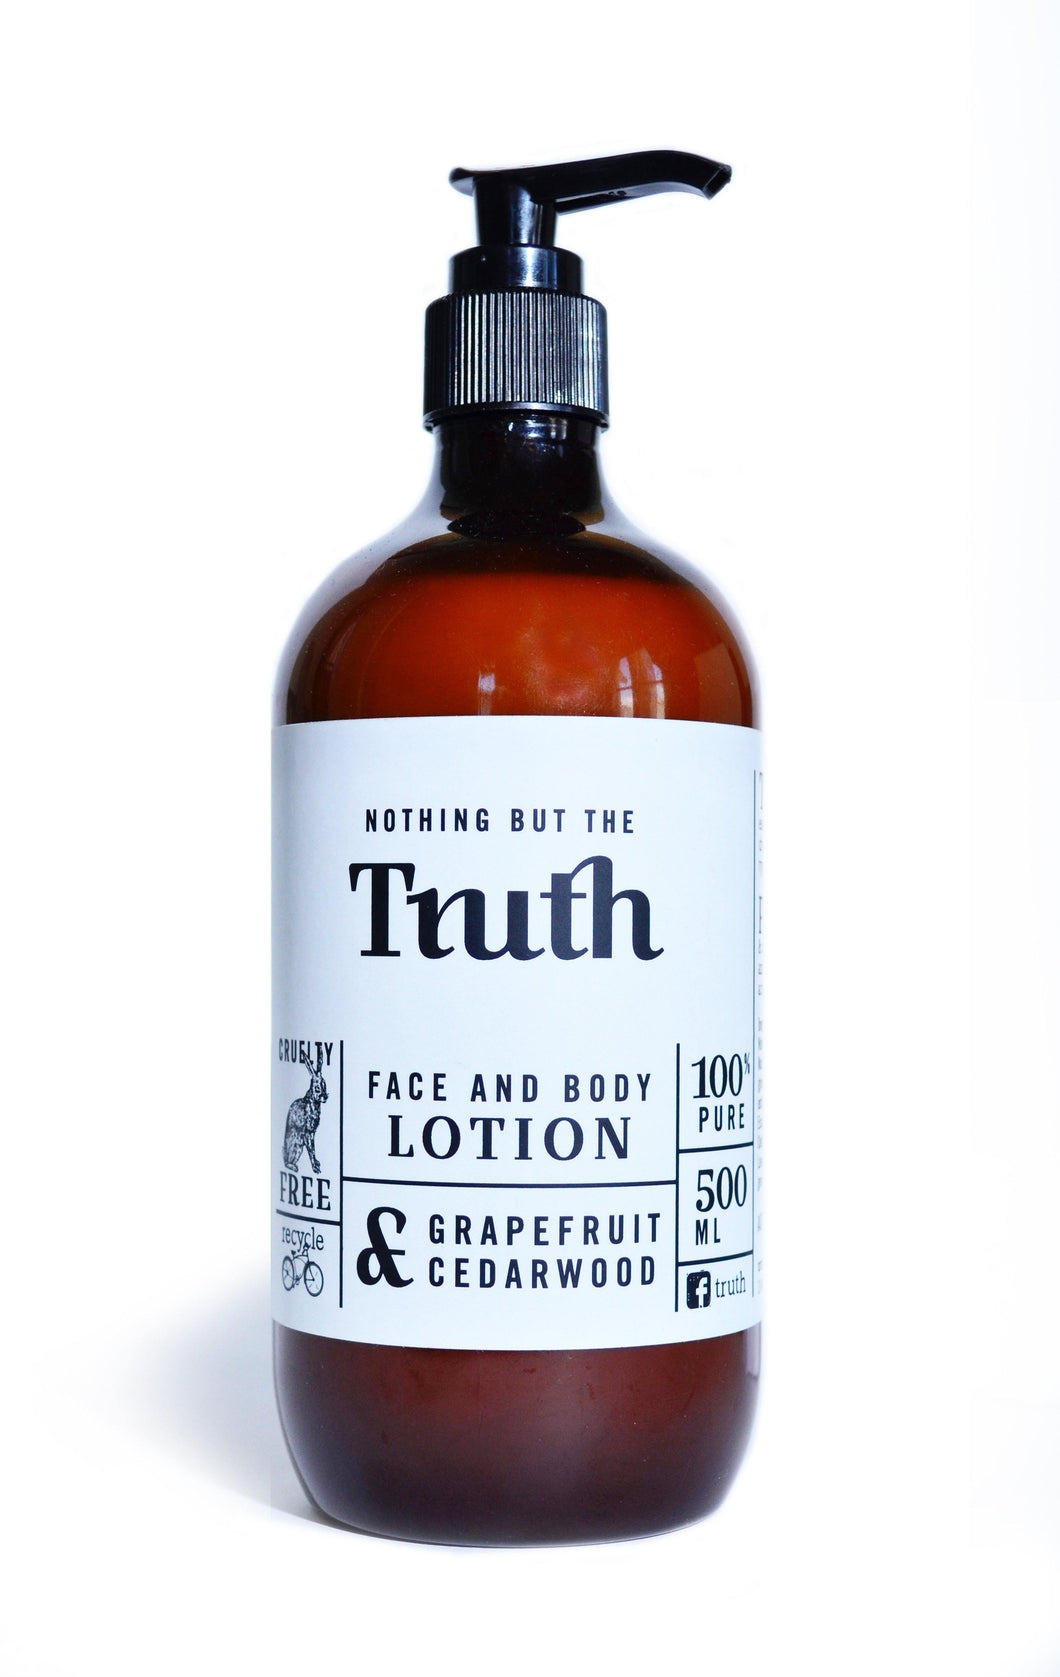 Face & Body Lotion 500ml Grapefruit & Cedarwood - Truth Cosmetics